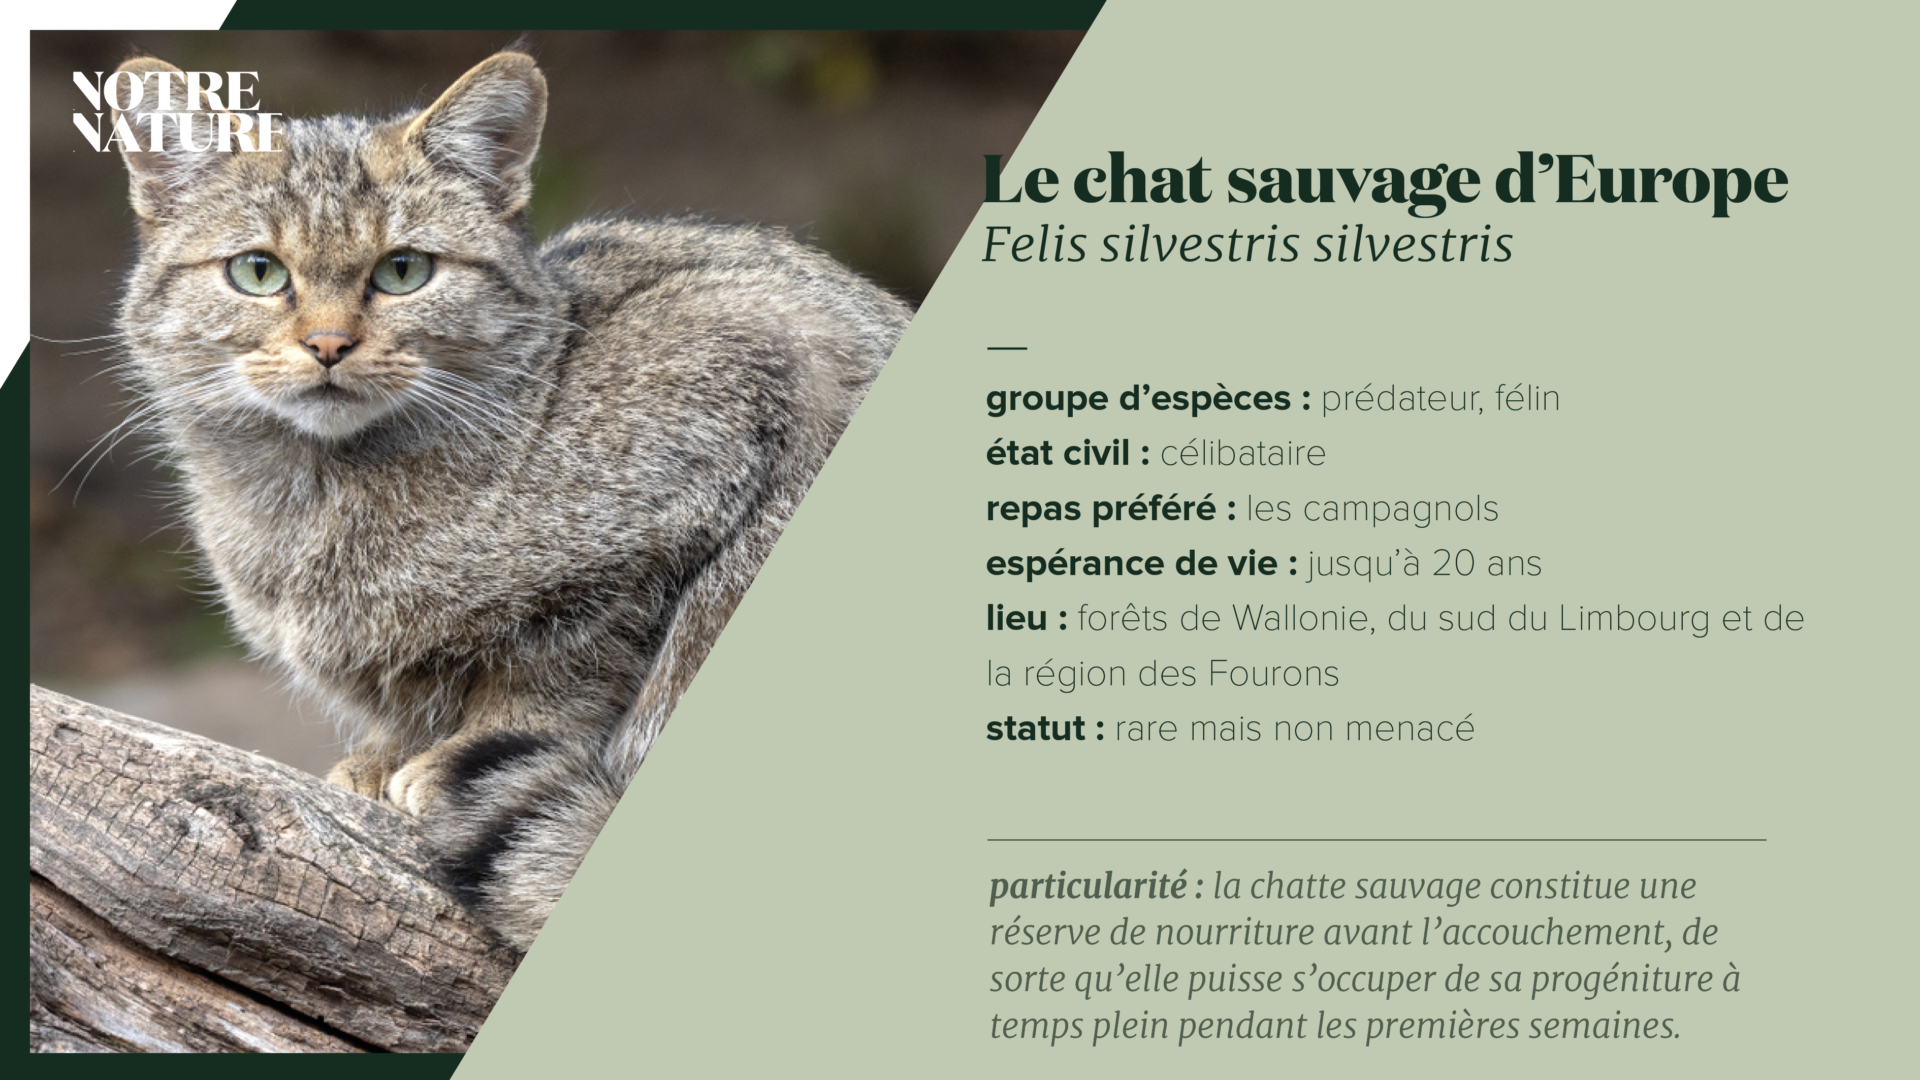 on-fiche-wilde-kat-fr.png